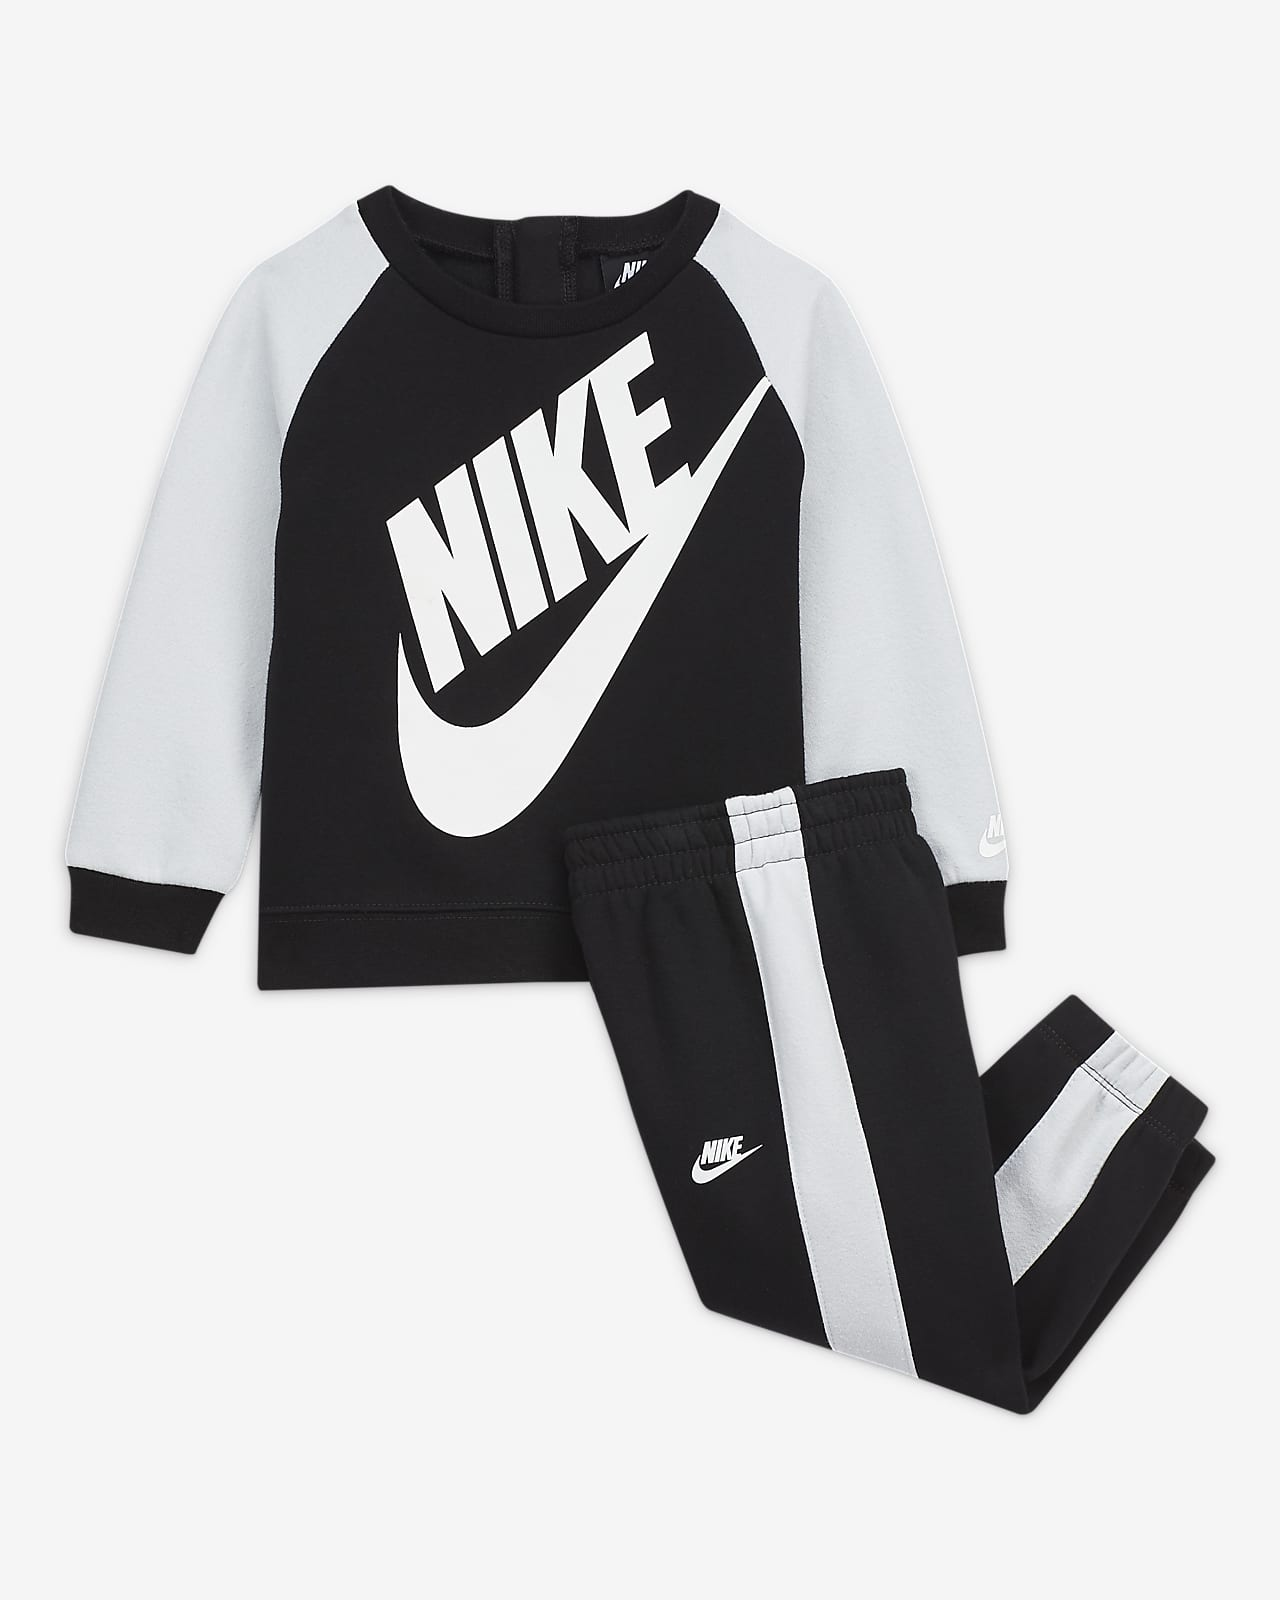 Nike Baby (12–24M) Crew and Trousers Set